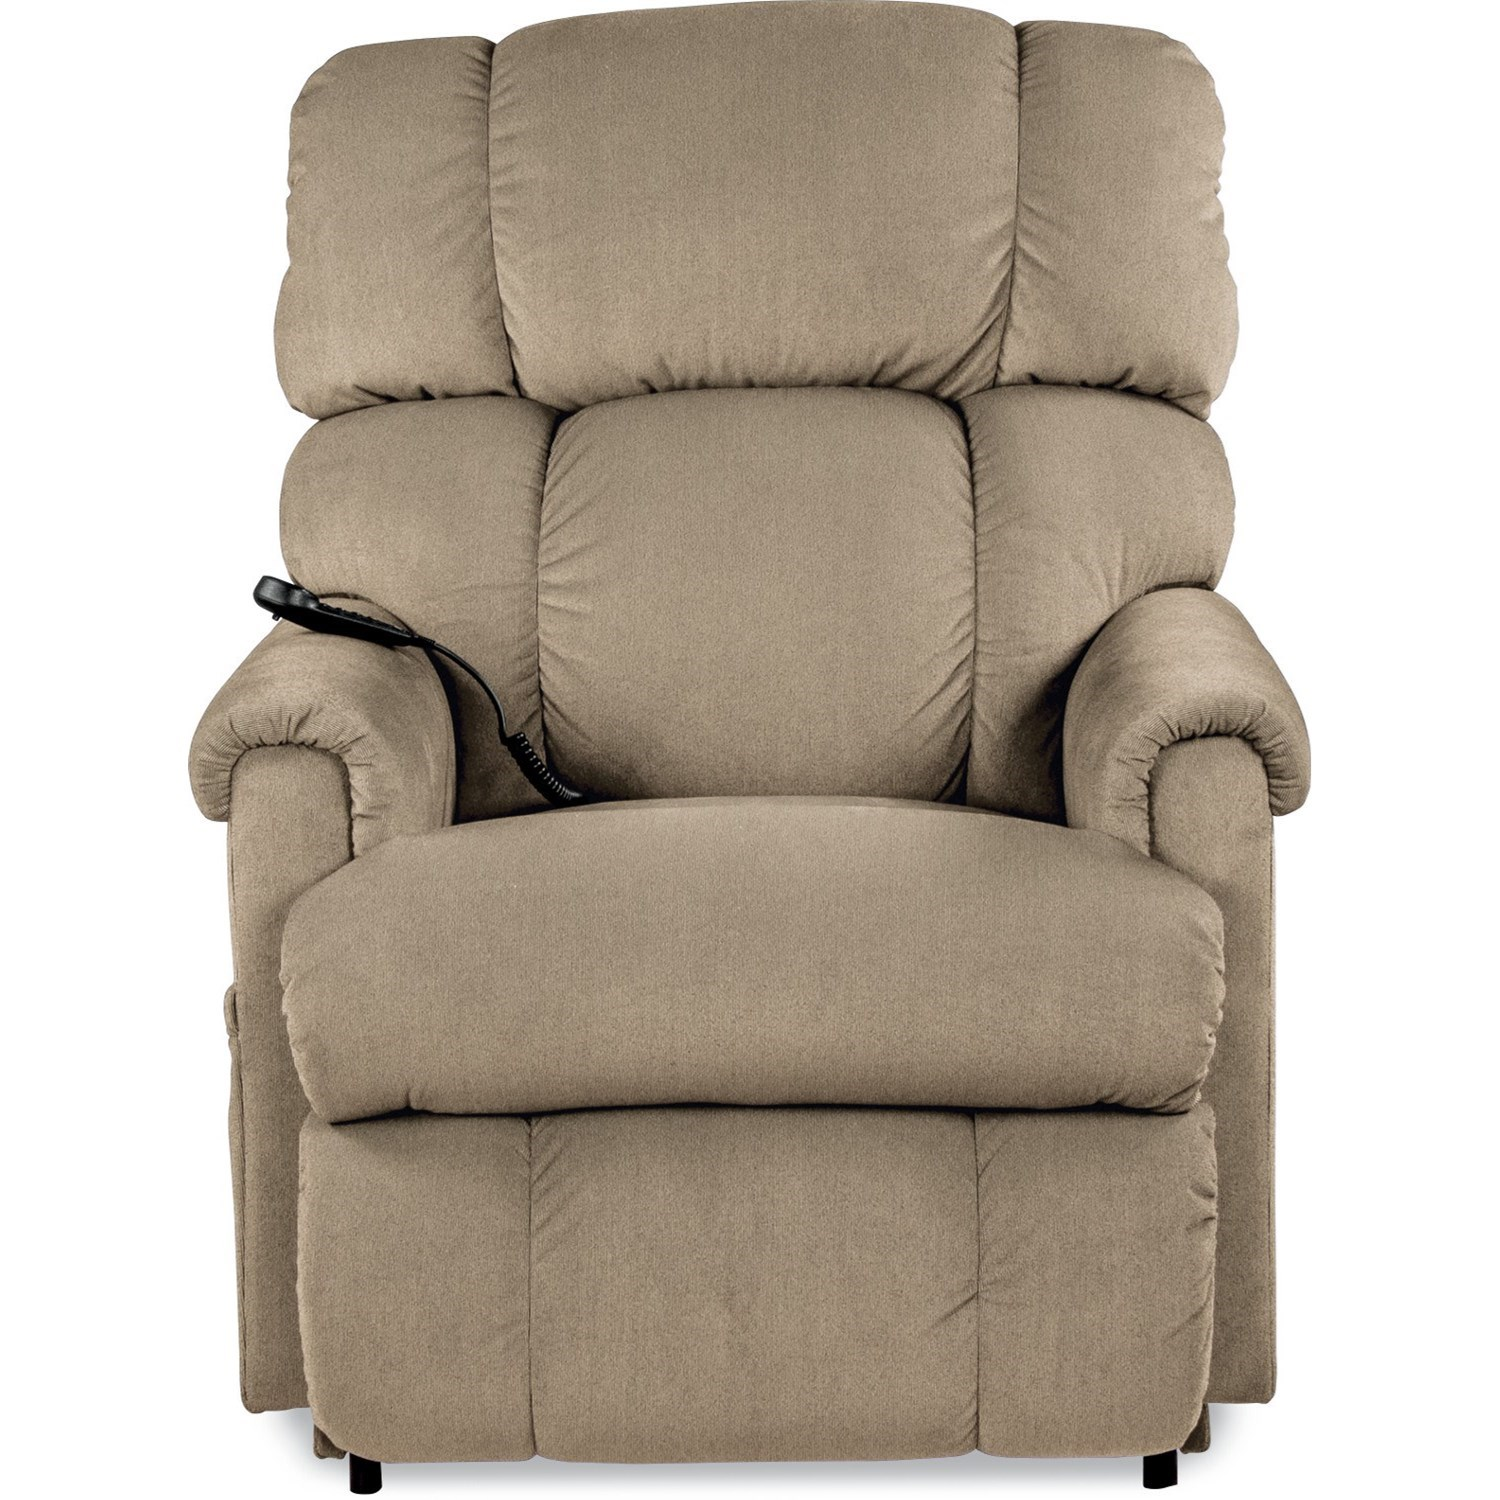 Platinum Luxury Lift® Power-Recline-XR+ Recliner